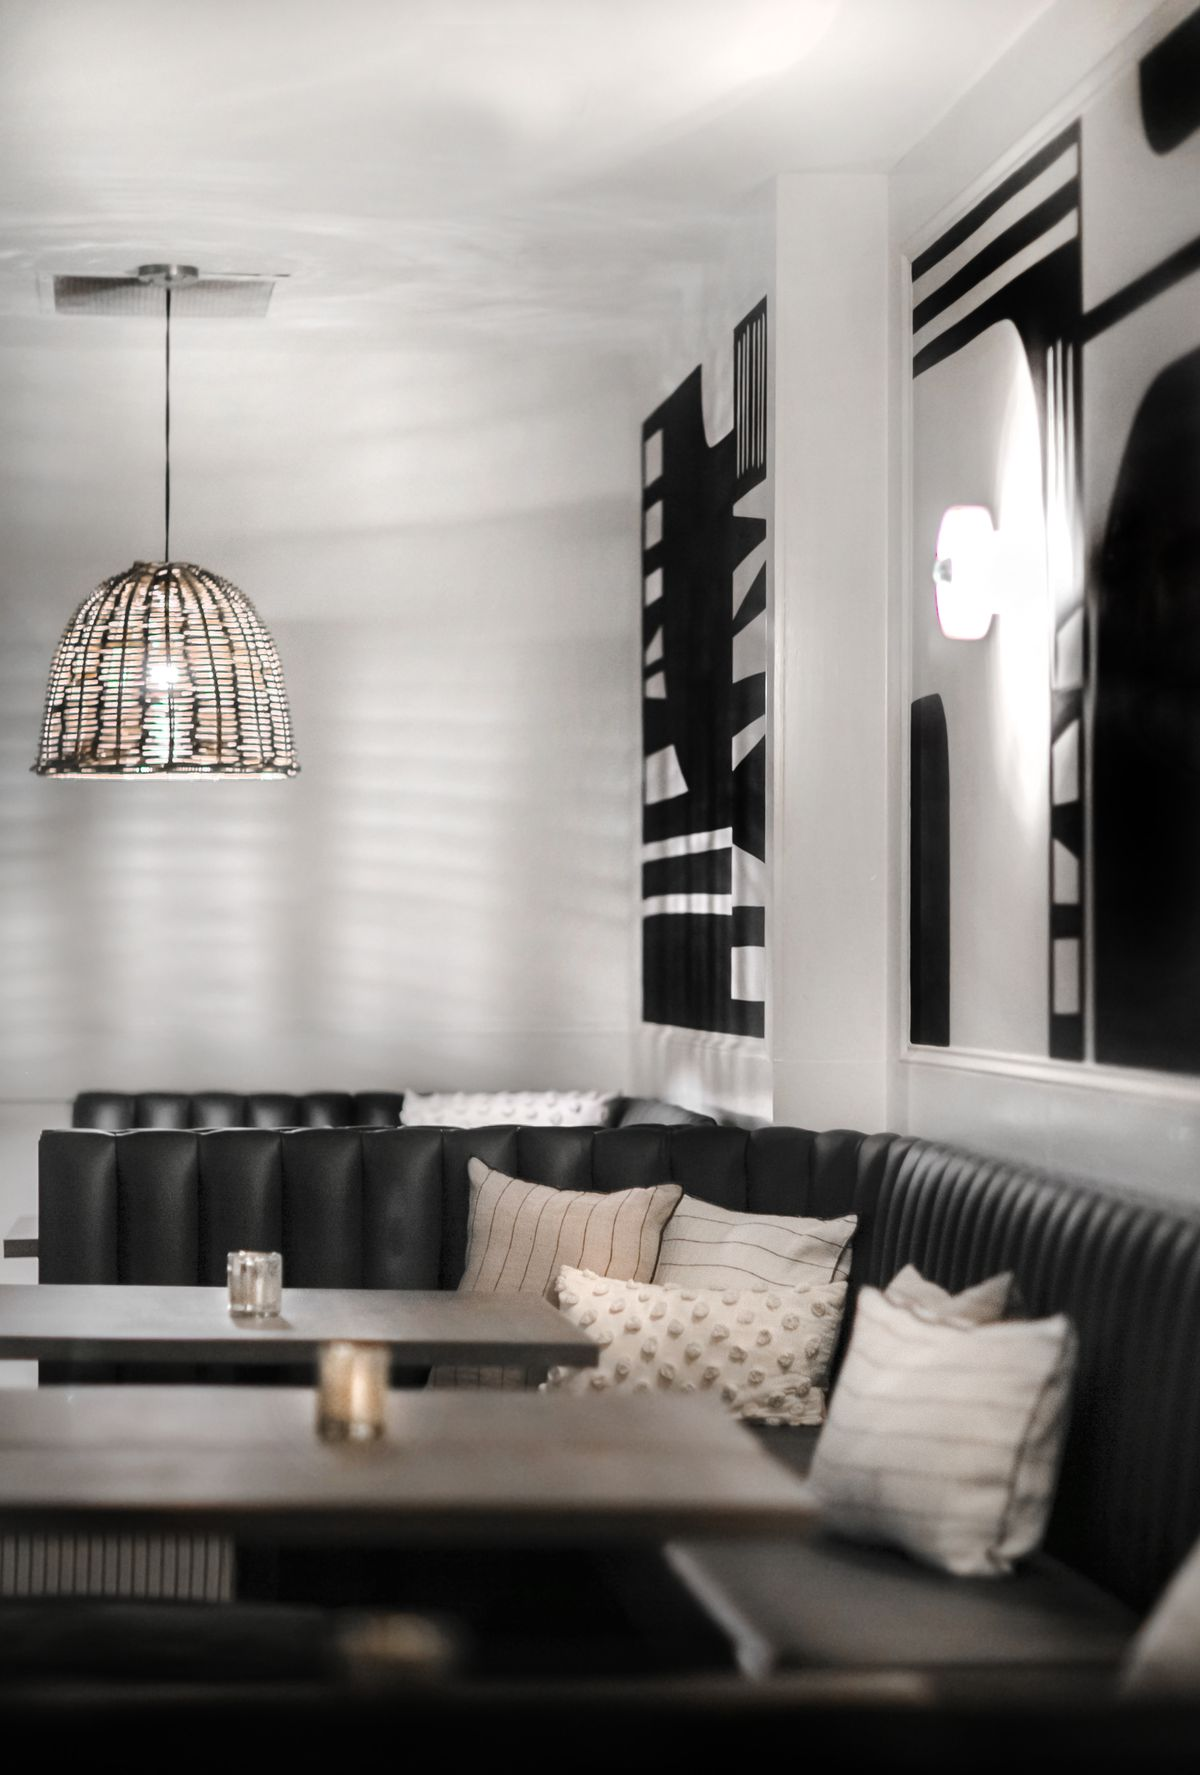 A black leather banquette featuring natural colored throw pillows curves into the corner with two tables in front of it